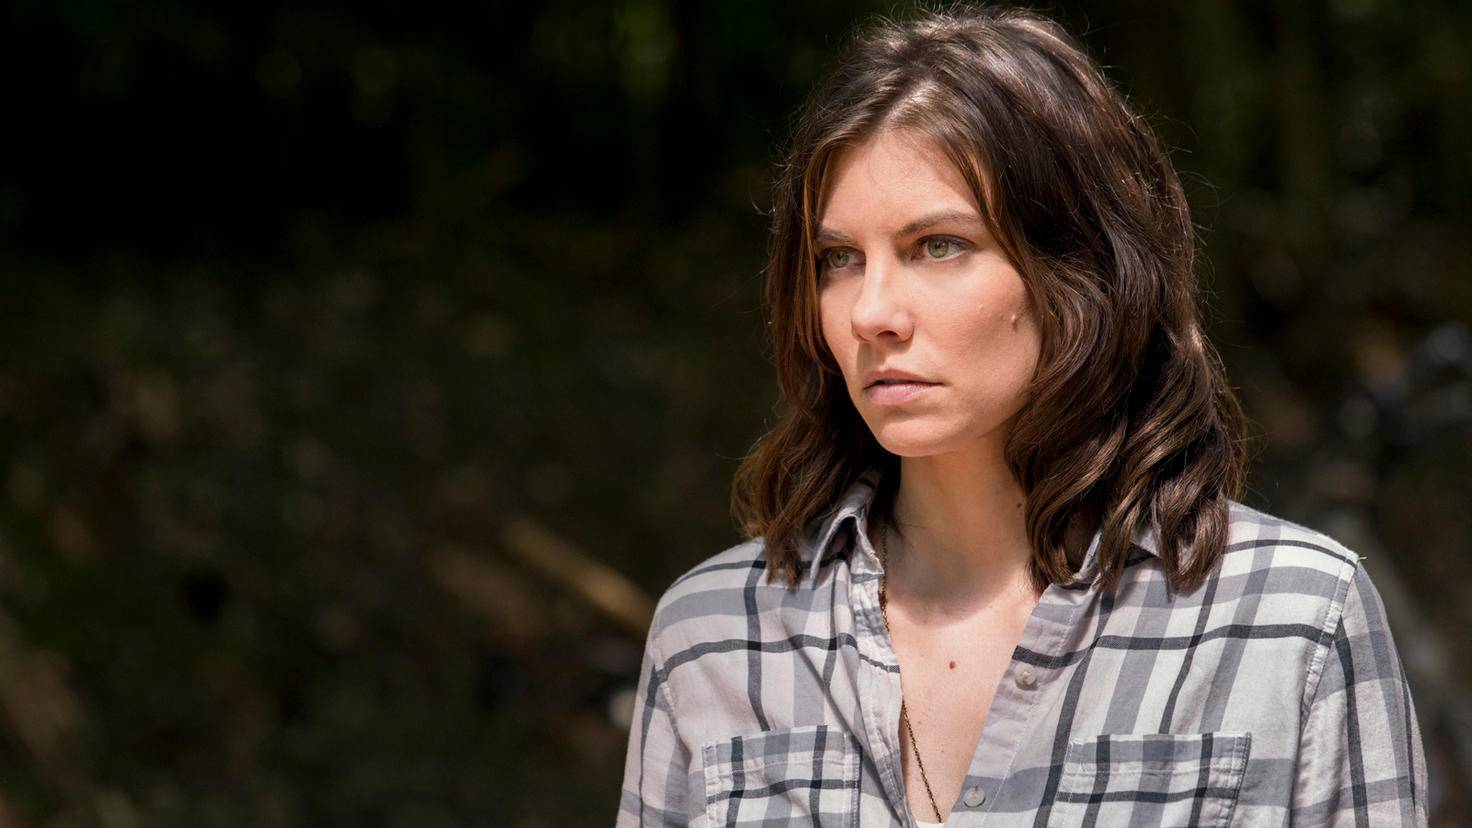 Maggie-The Walking Dead-Jackson Lee Davis-AMC